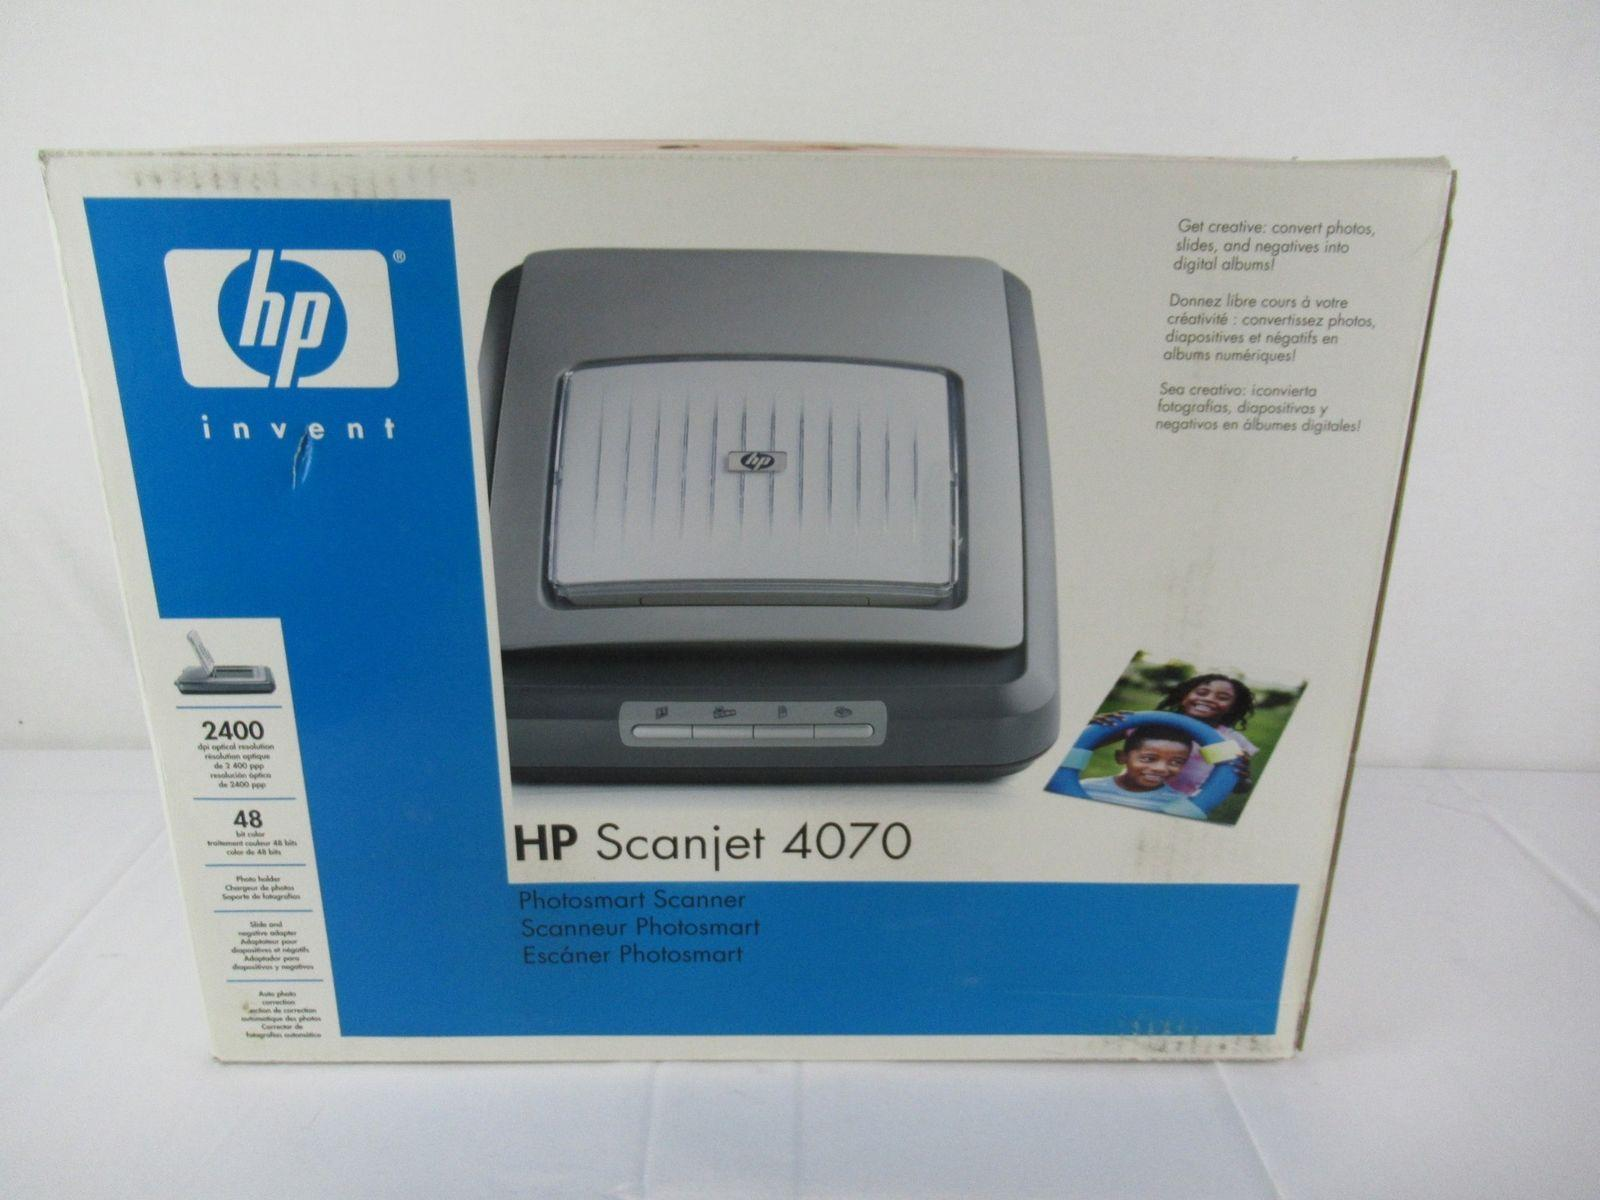 HP Invent ScanJet 4070 Photosmart Scanner New Open Box